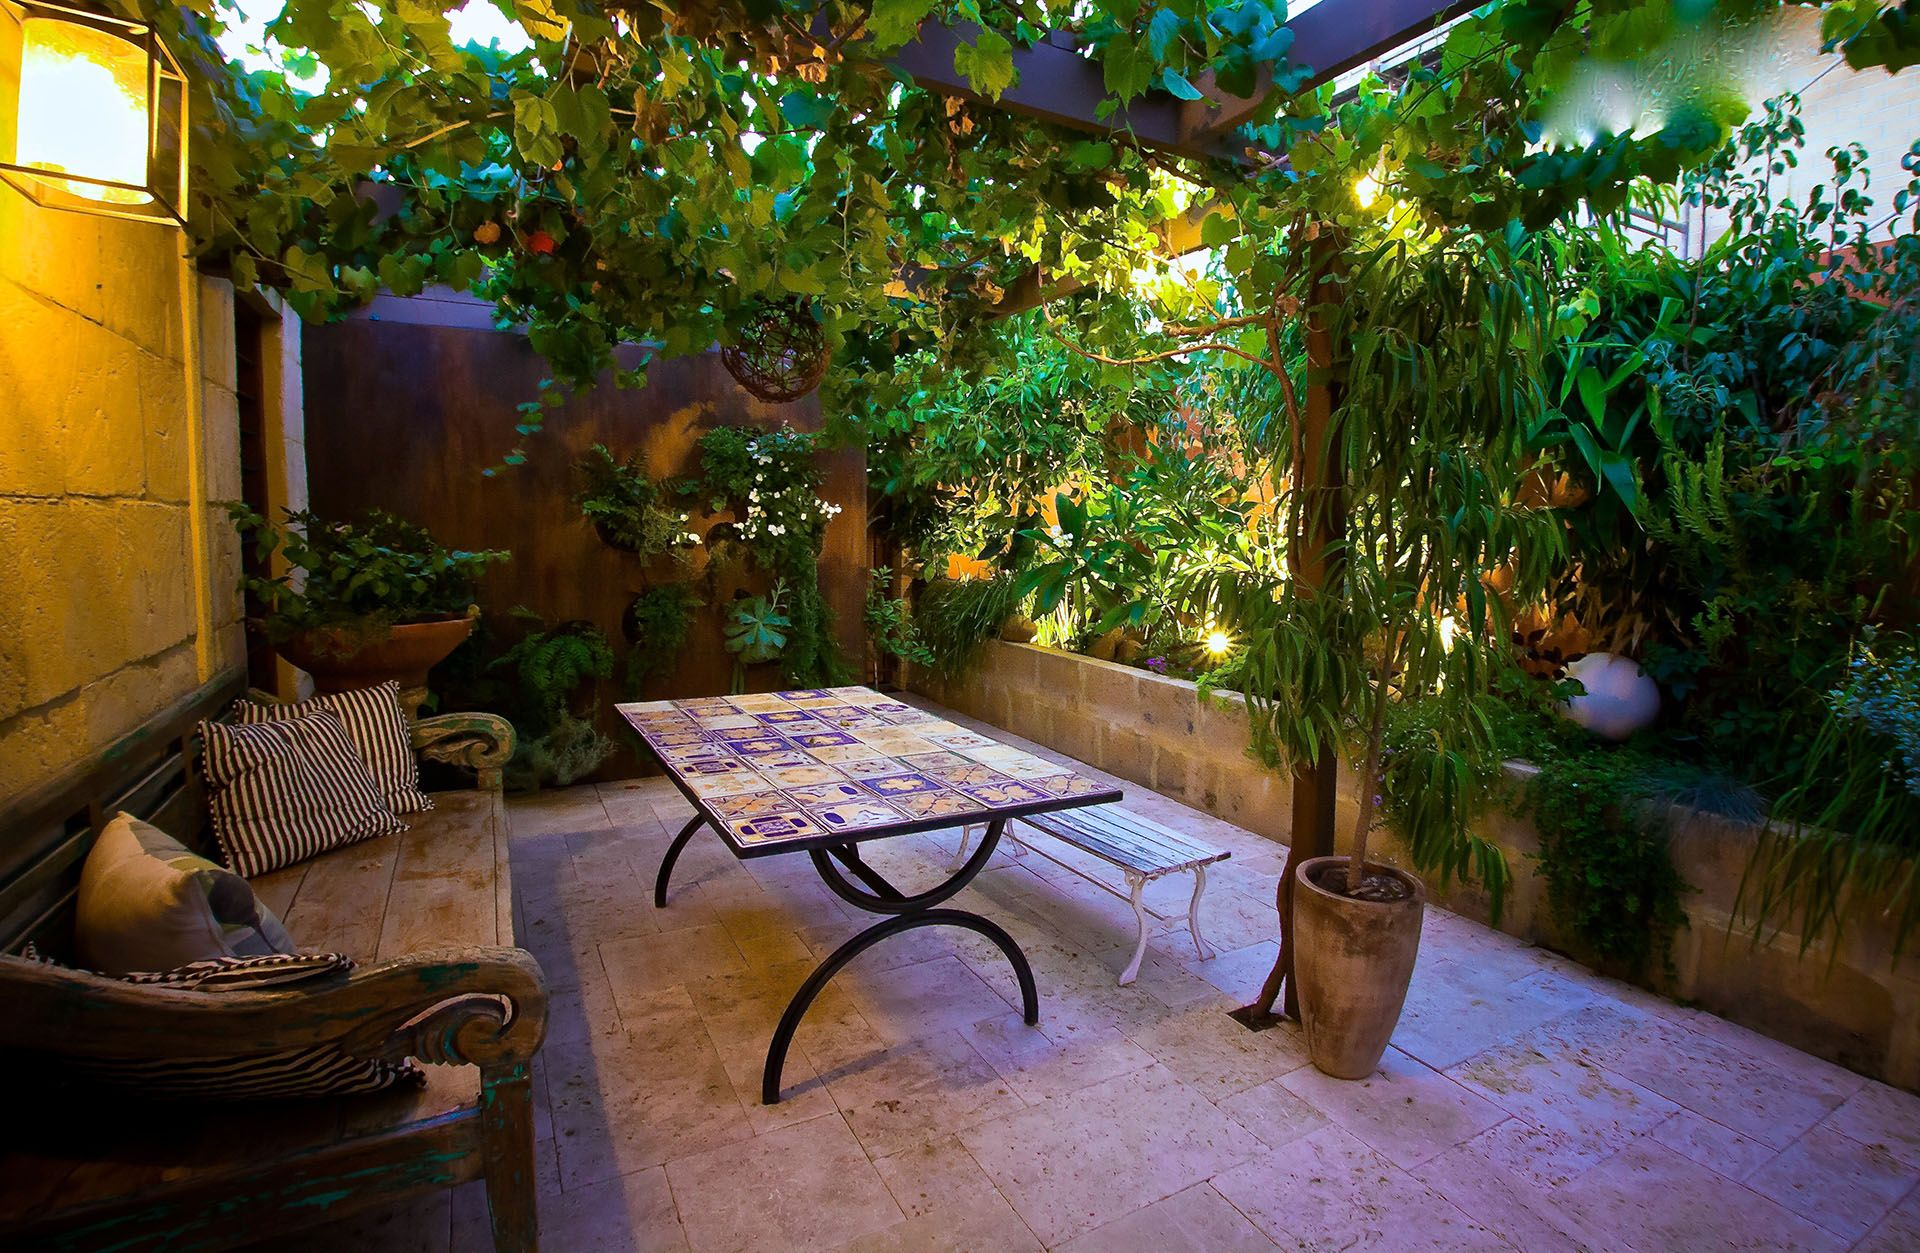 Exterior courtyard renovation mediterranean garden design for Italian courtyard garden design ideas